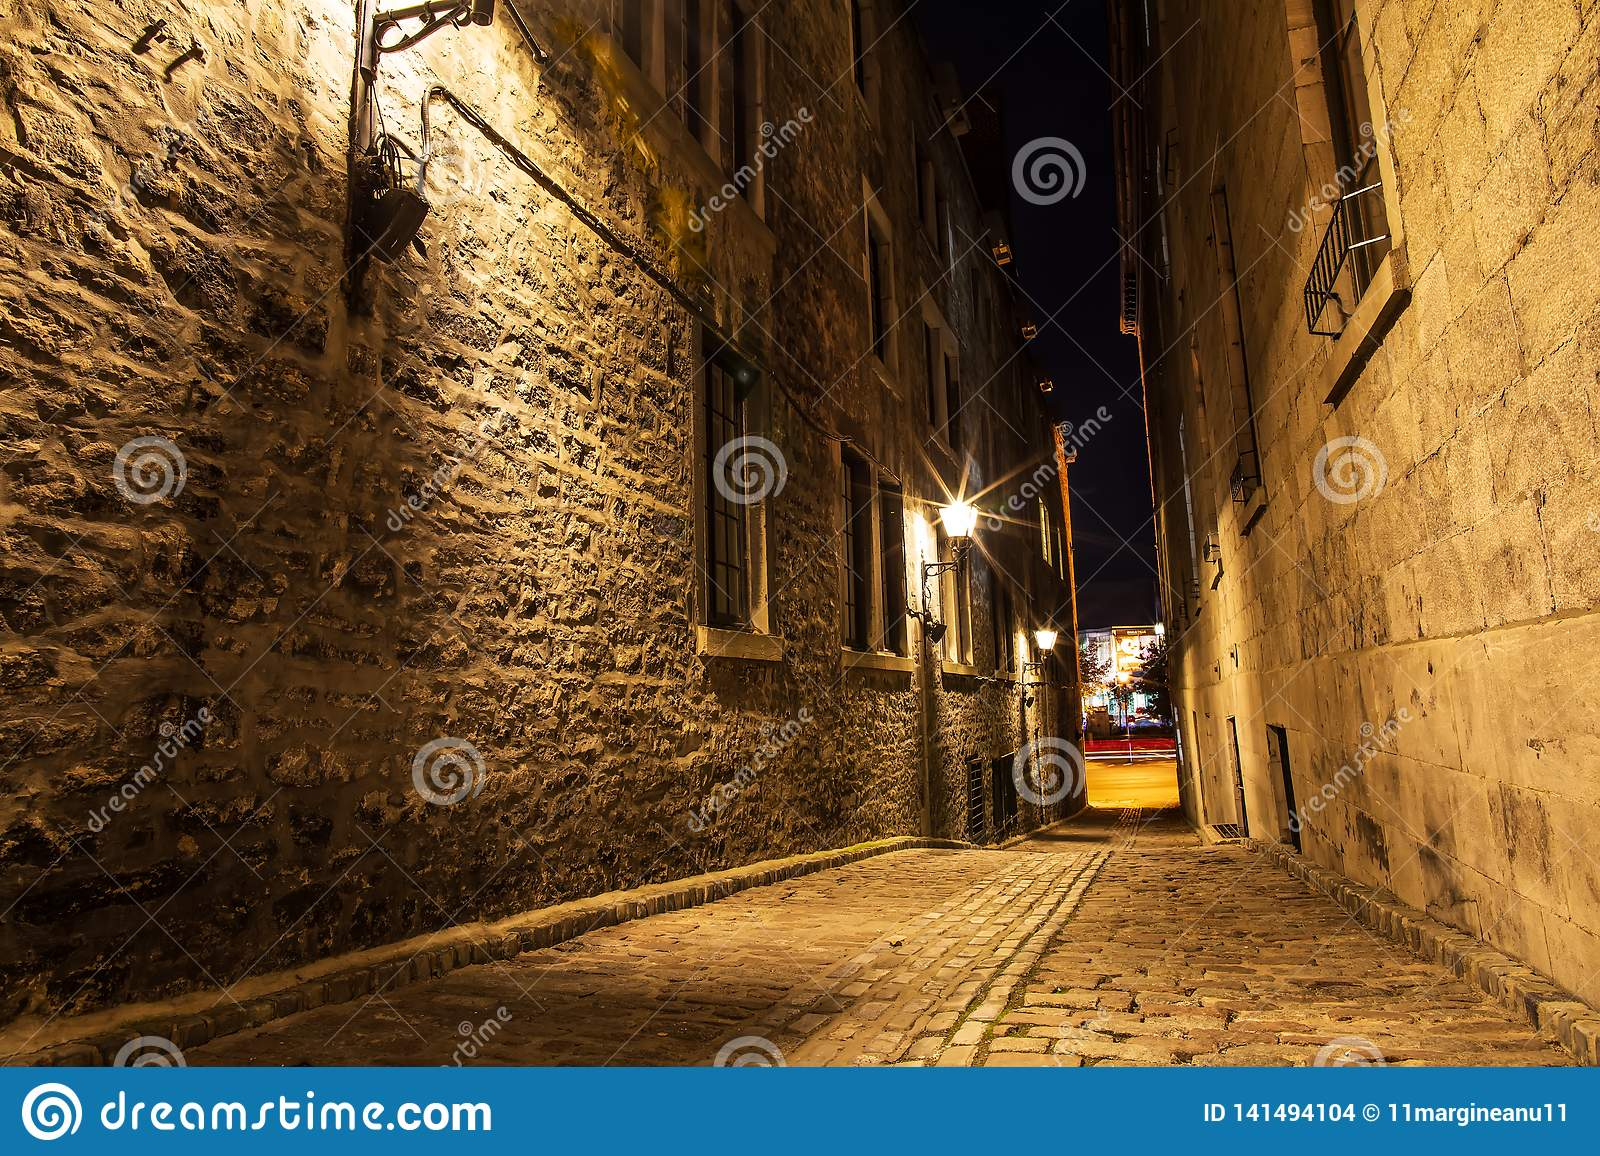 Small street and historical buildings in the historic site of Old Port from Montreal, night view. Scenic background of Canadian